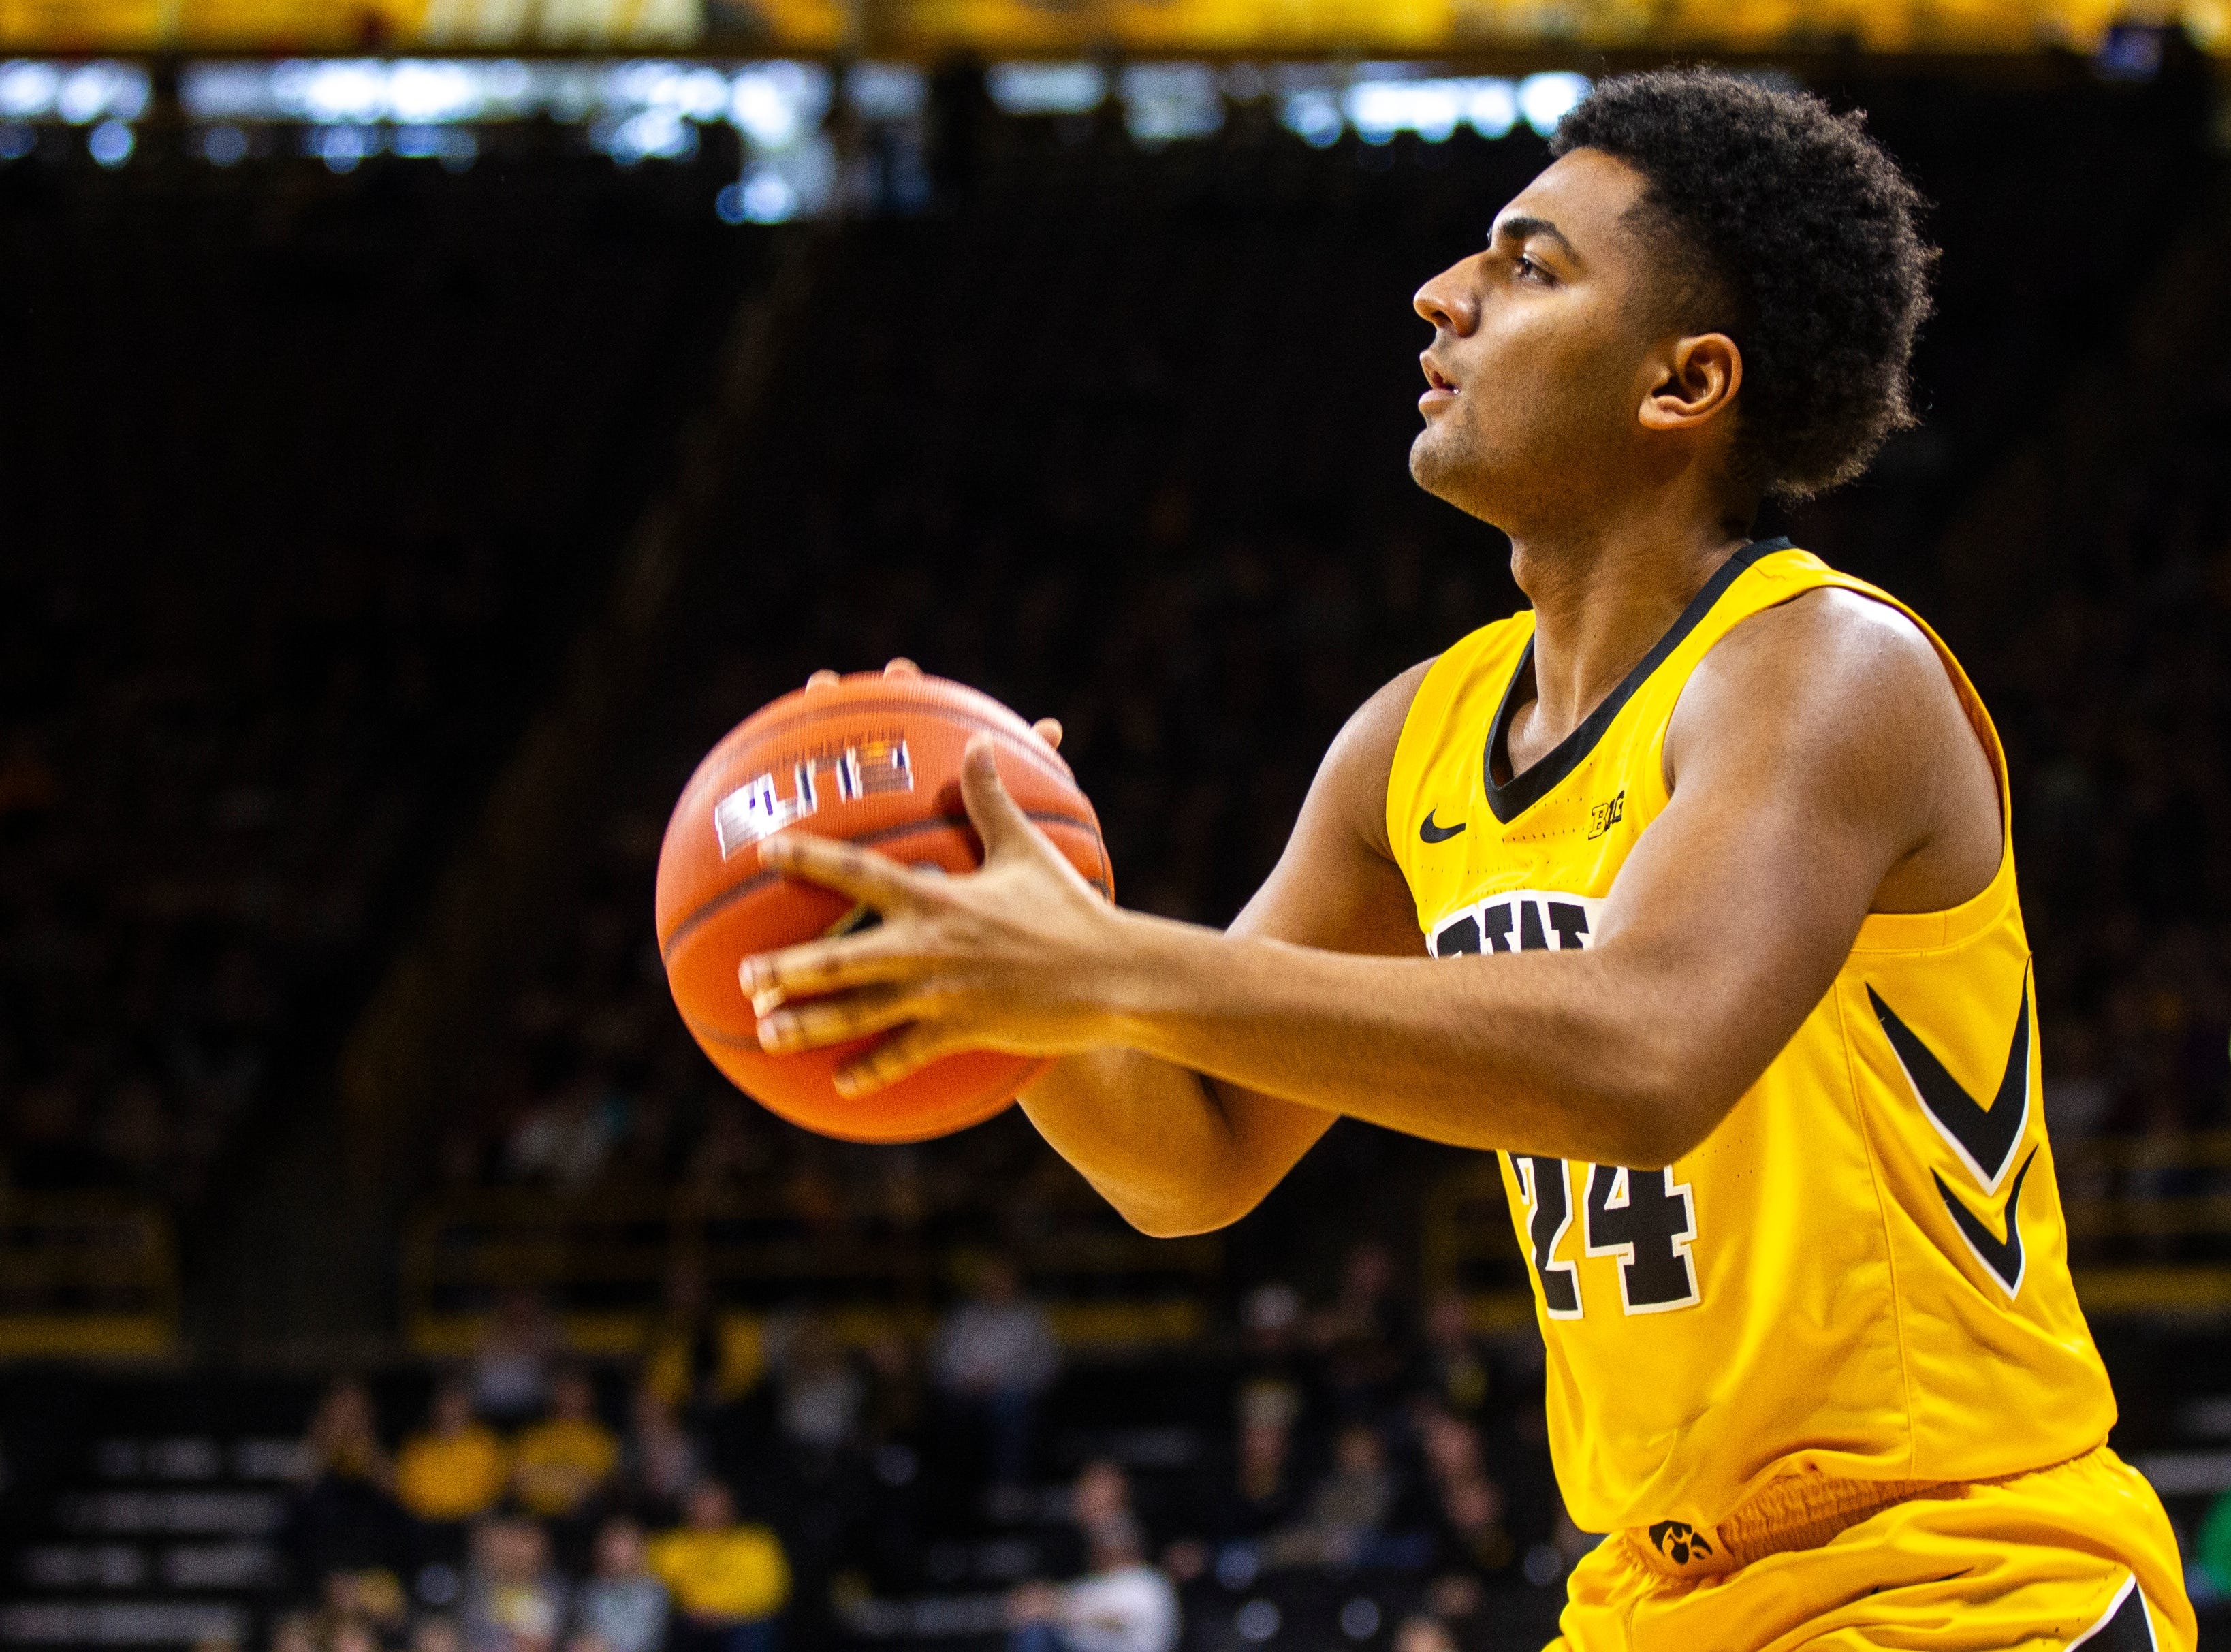 Iowa guard Nicolas Hobbs (24) attempts a basket during a NCAA men's basketball game on Saturday, Dec. 22, 2018, at Carver-Hawkeye Arena in Iowa City.